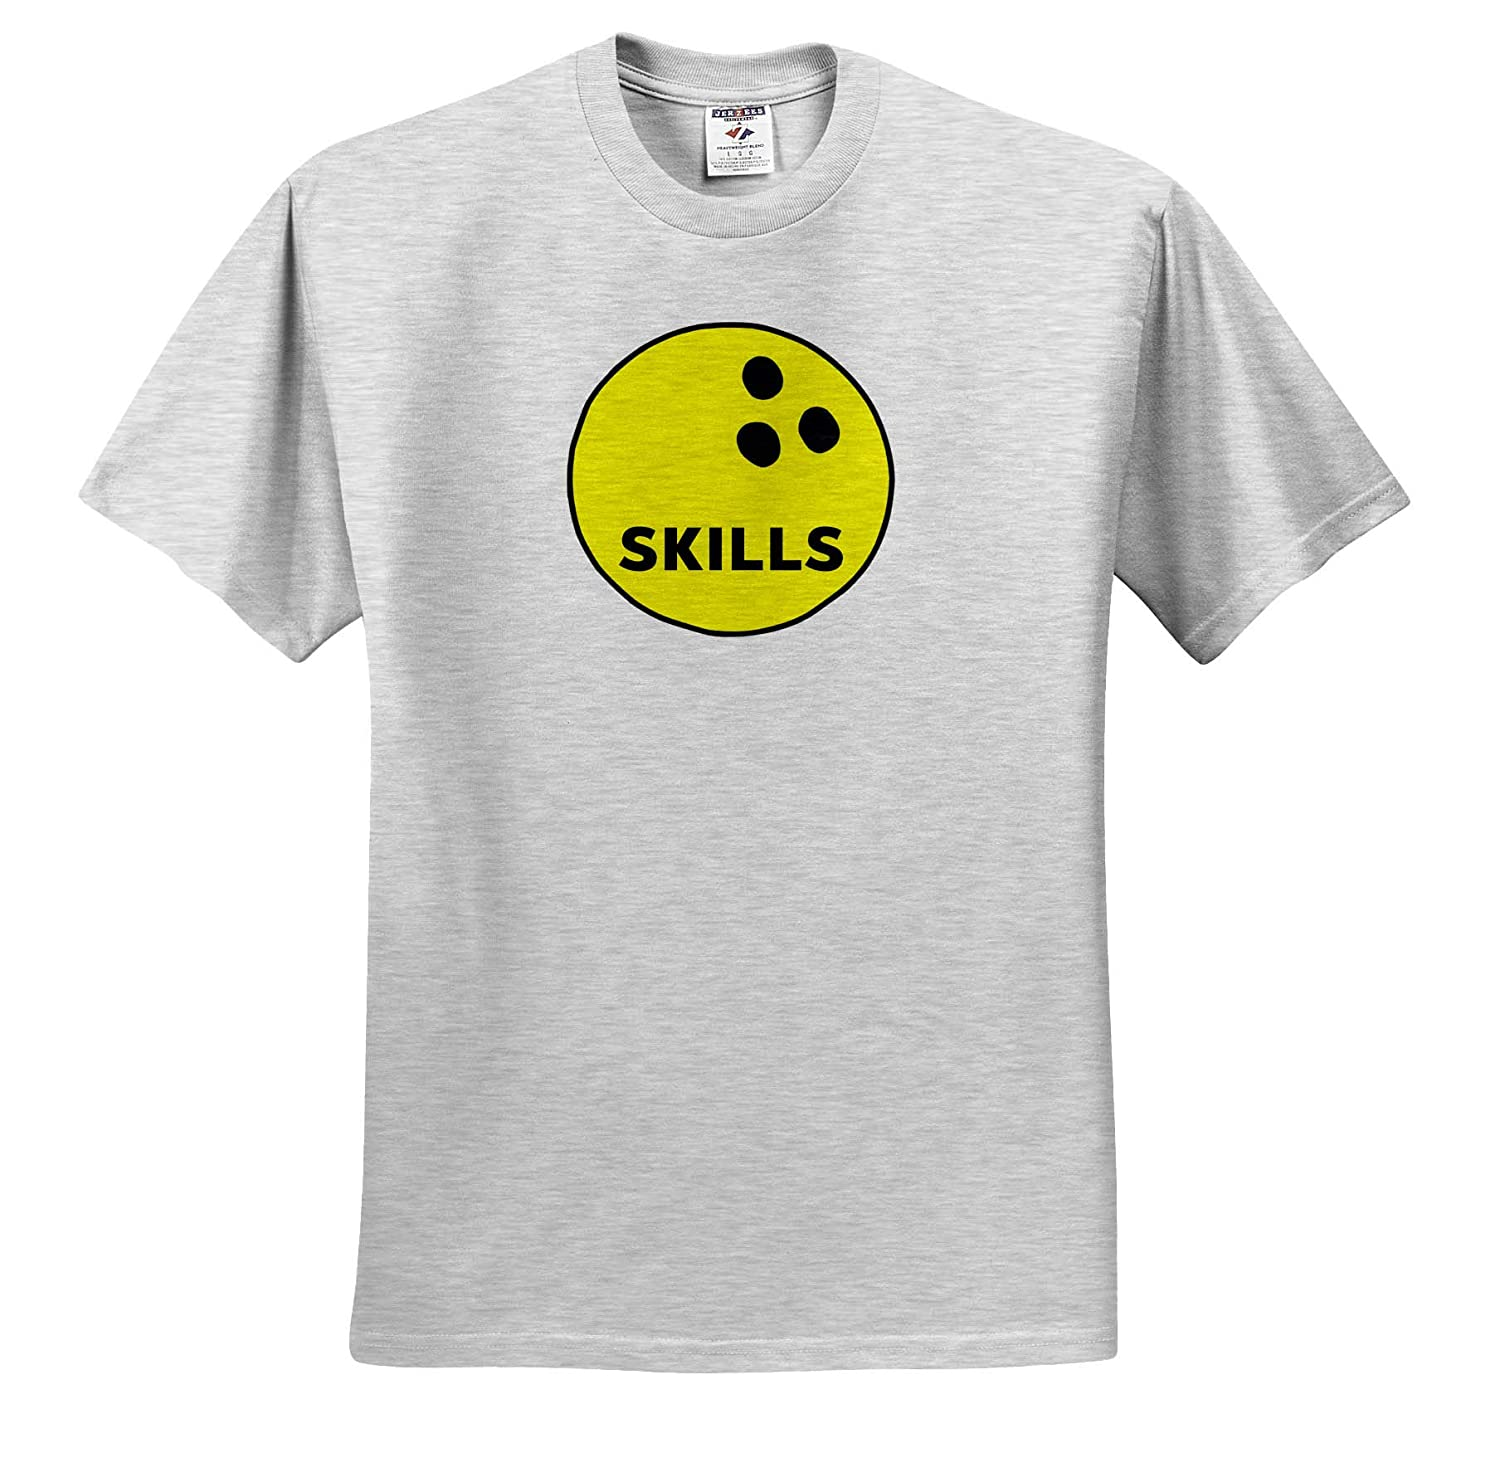 ts/_321057 Adult T-Shirt XL 3dRose Carrie Quote Image Image of Bowling Ball Quote Skills